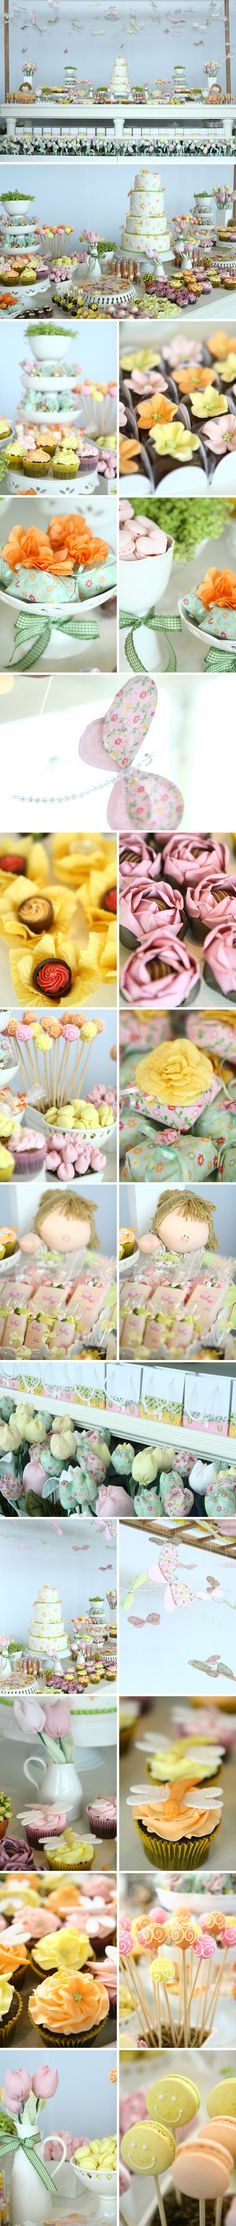 Voando entre as cores | Festejar é preciso!                                                                                                                                                                                 Mais Fiesta Party, Party Co, Party Time, Tea Party Birthday, Girl First Birthday, Adult Party Themes, Spring Party, Dessert Buffet, Party Desserts